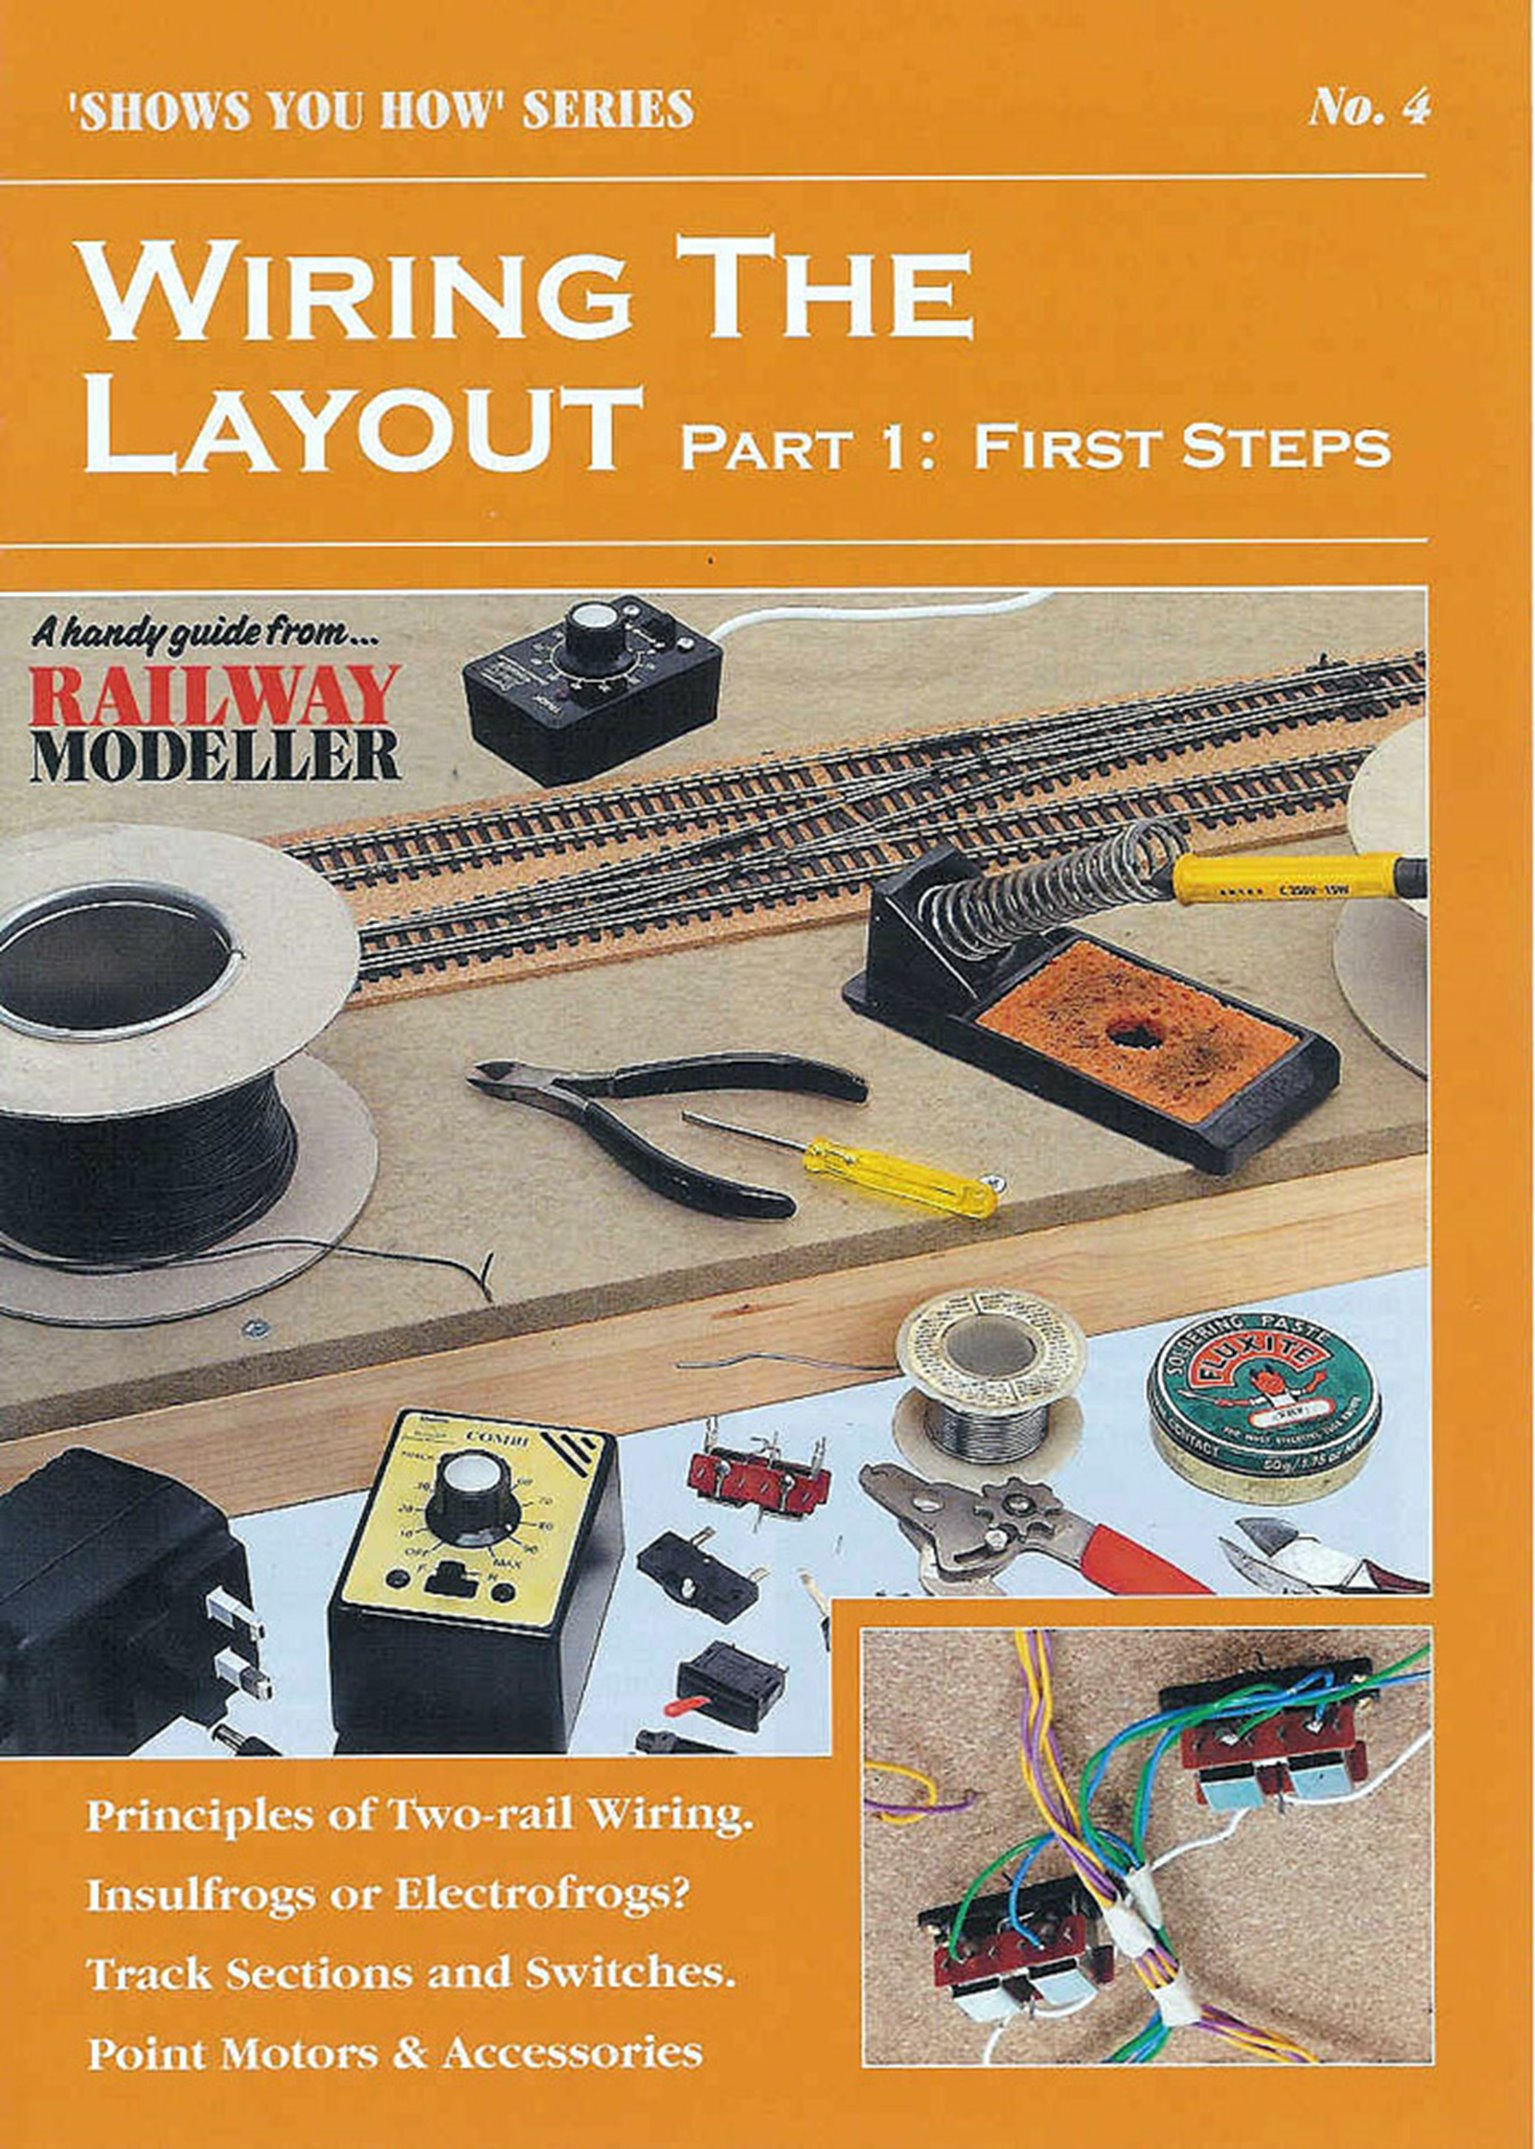 """Shows You How"" Series - Wiring the Layout Part 1: First Steps"